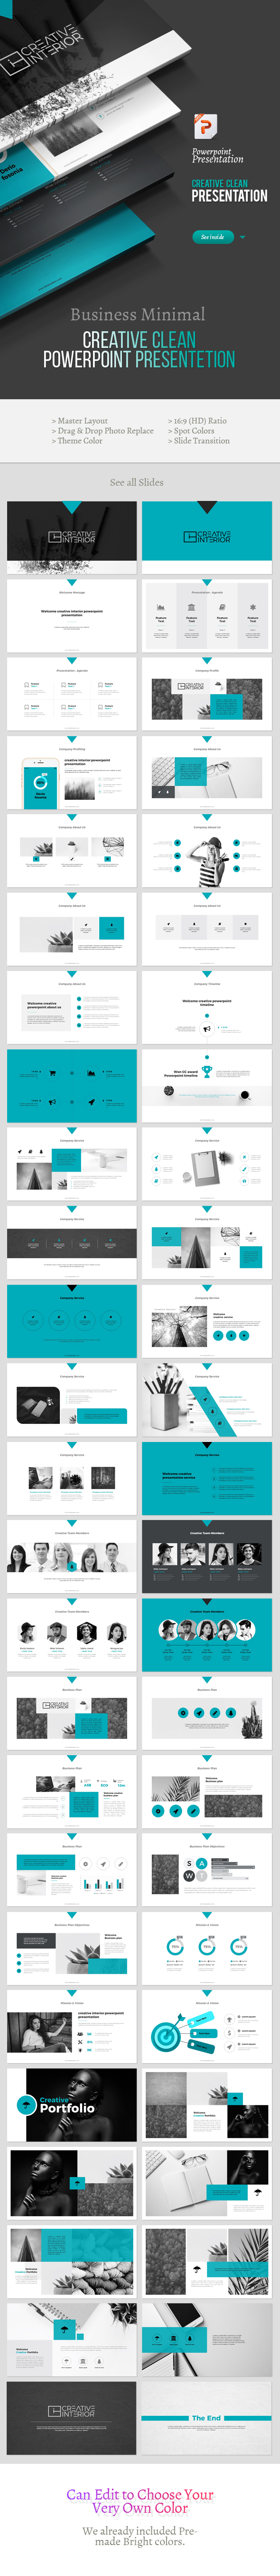 Creative Multipurpose Powerpoint Template - Creative PowerPoint Templates